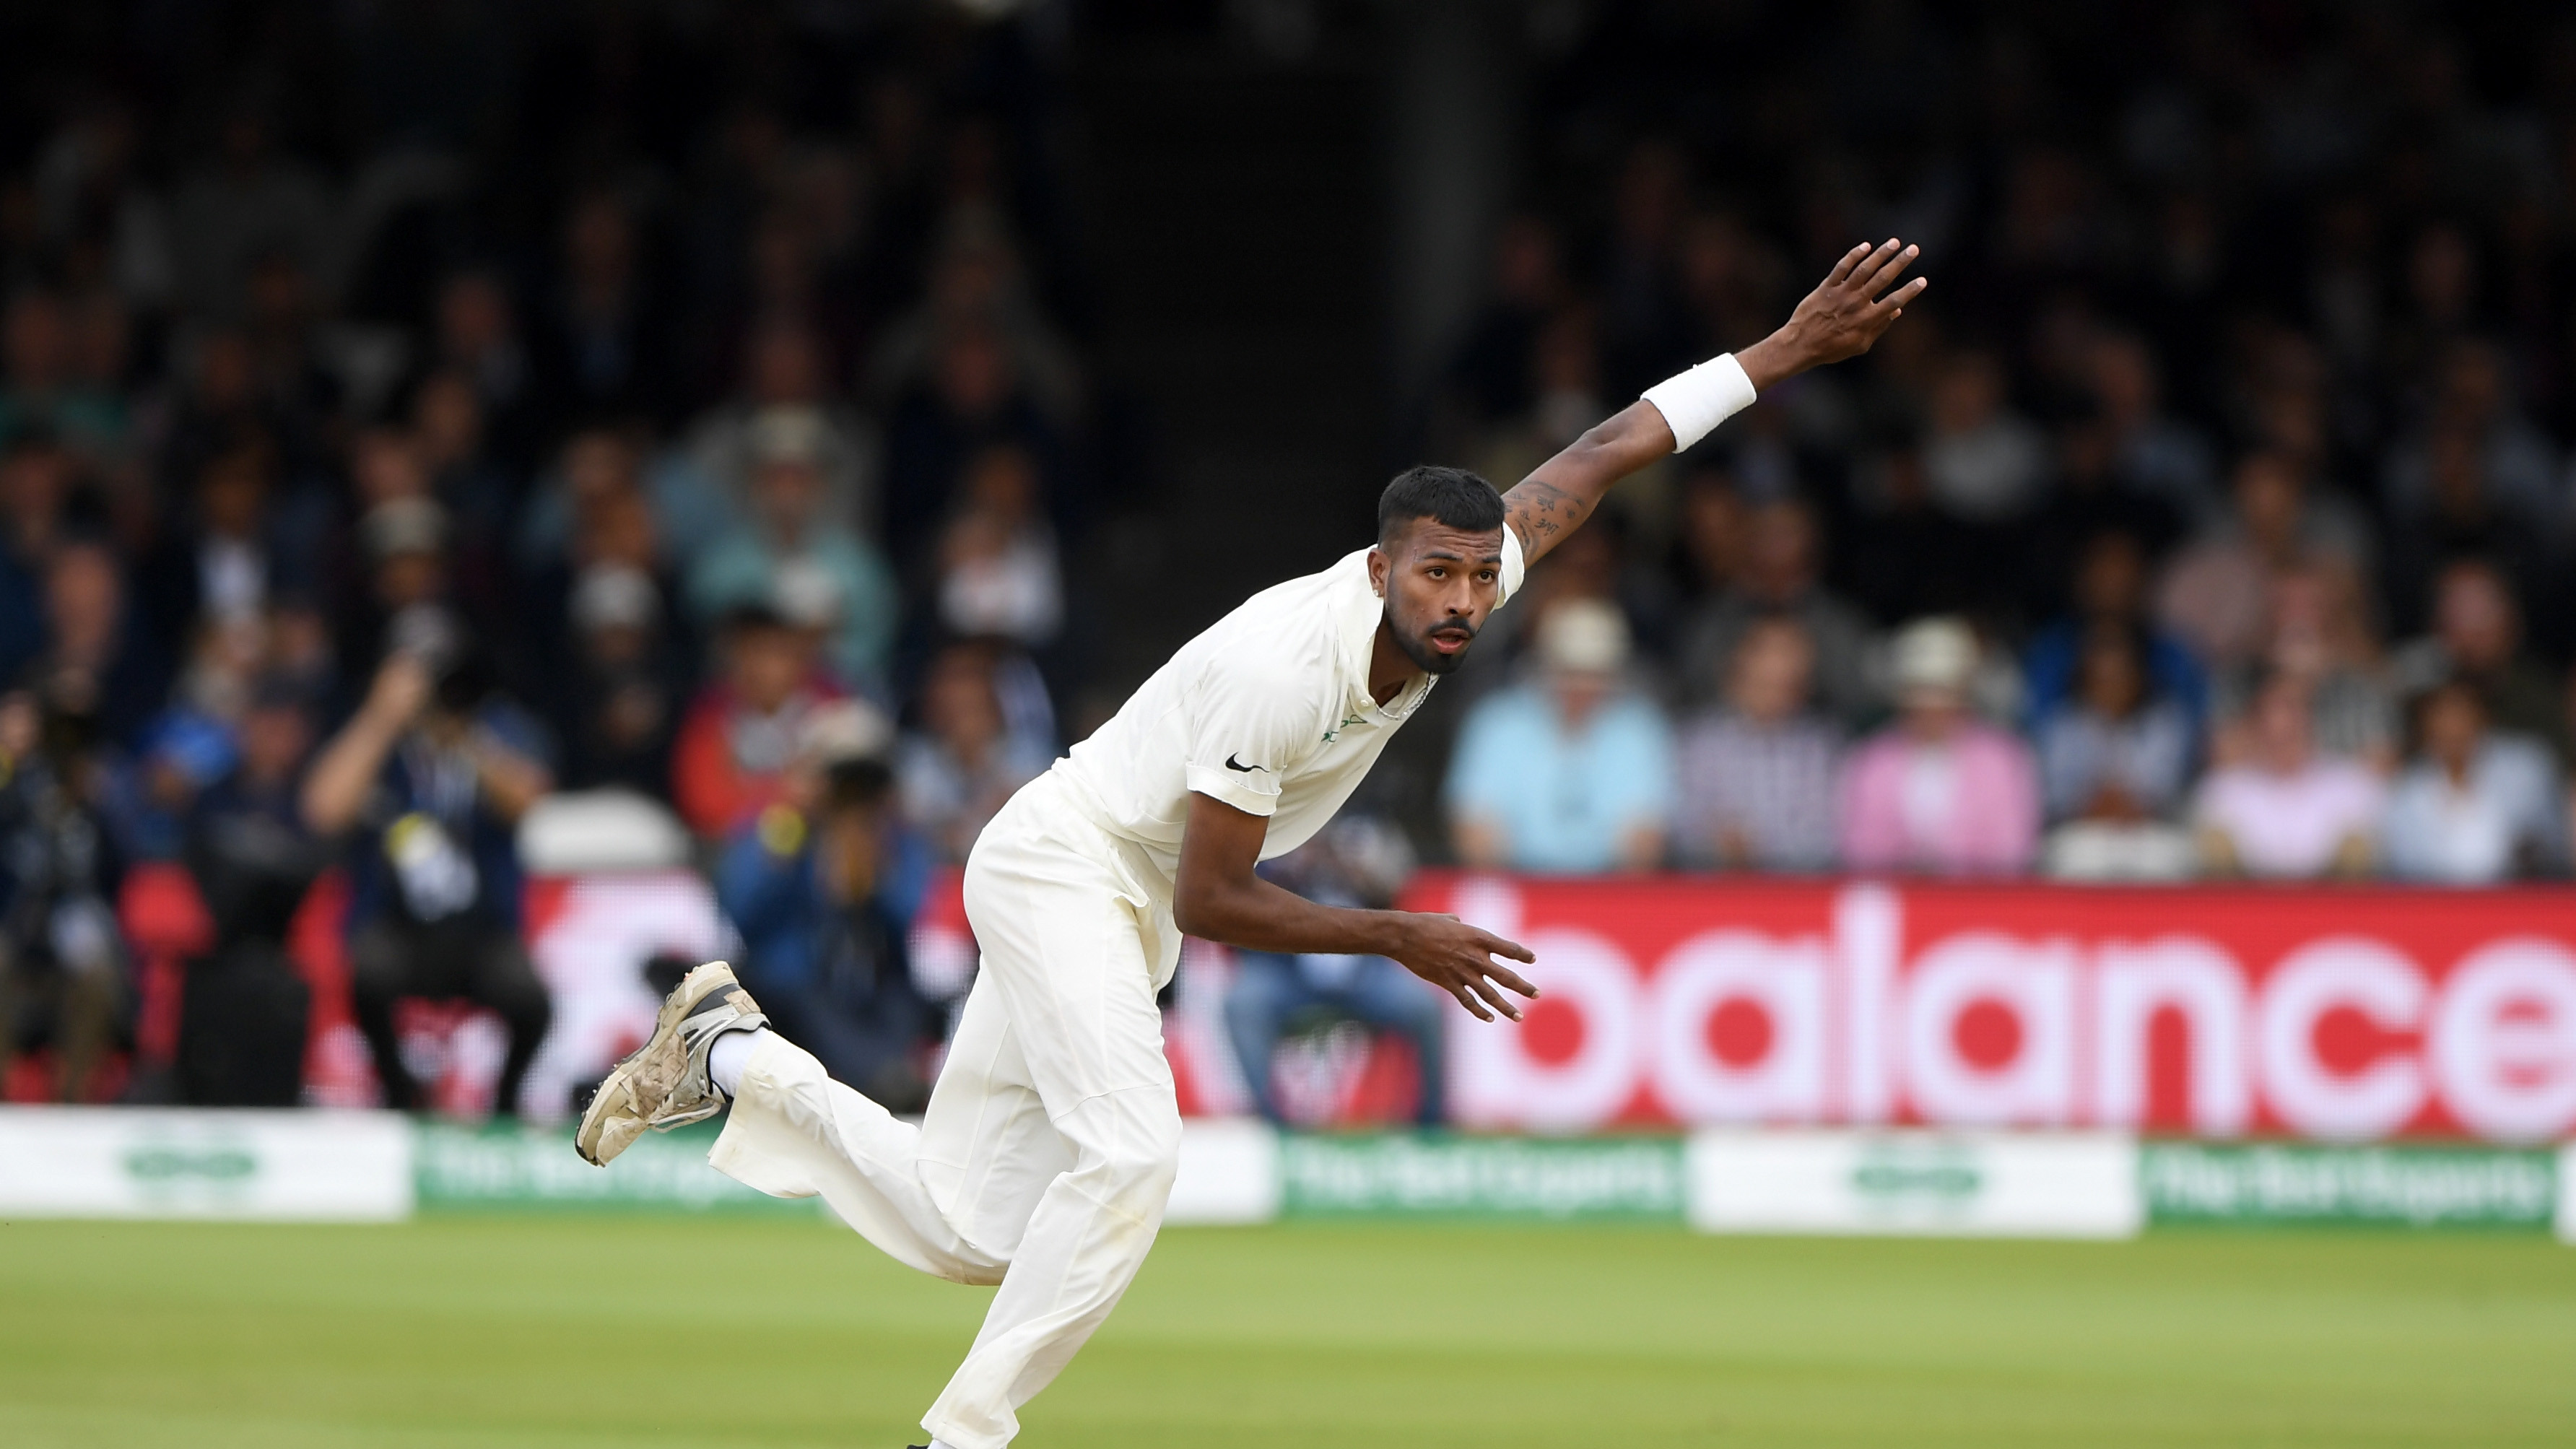 ENG vs IND 2018: Hardik Pandya defends India's decision to play two spinners at Lord's